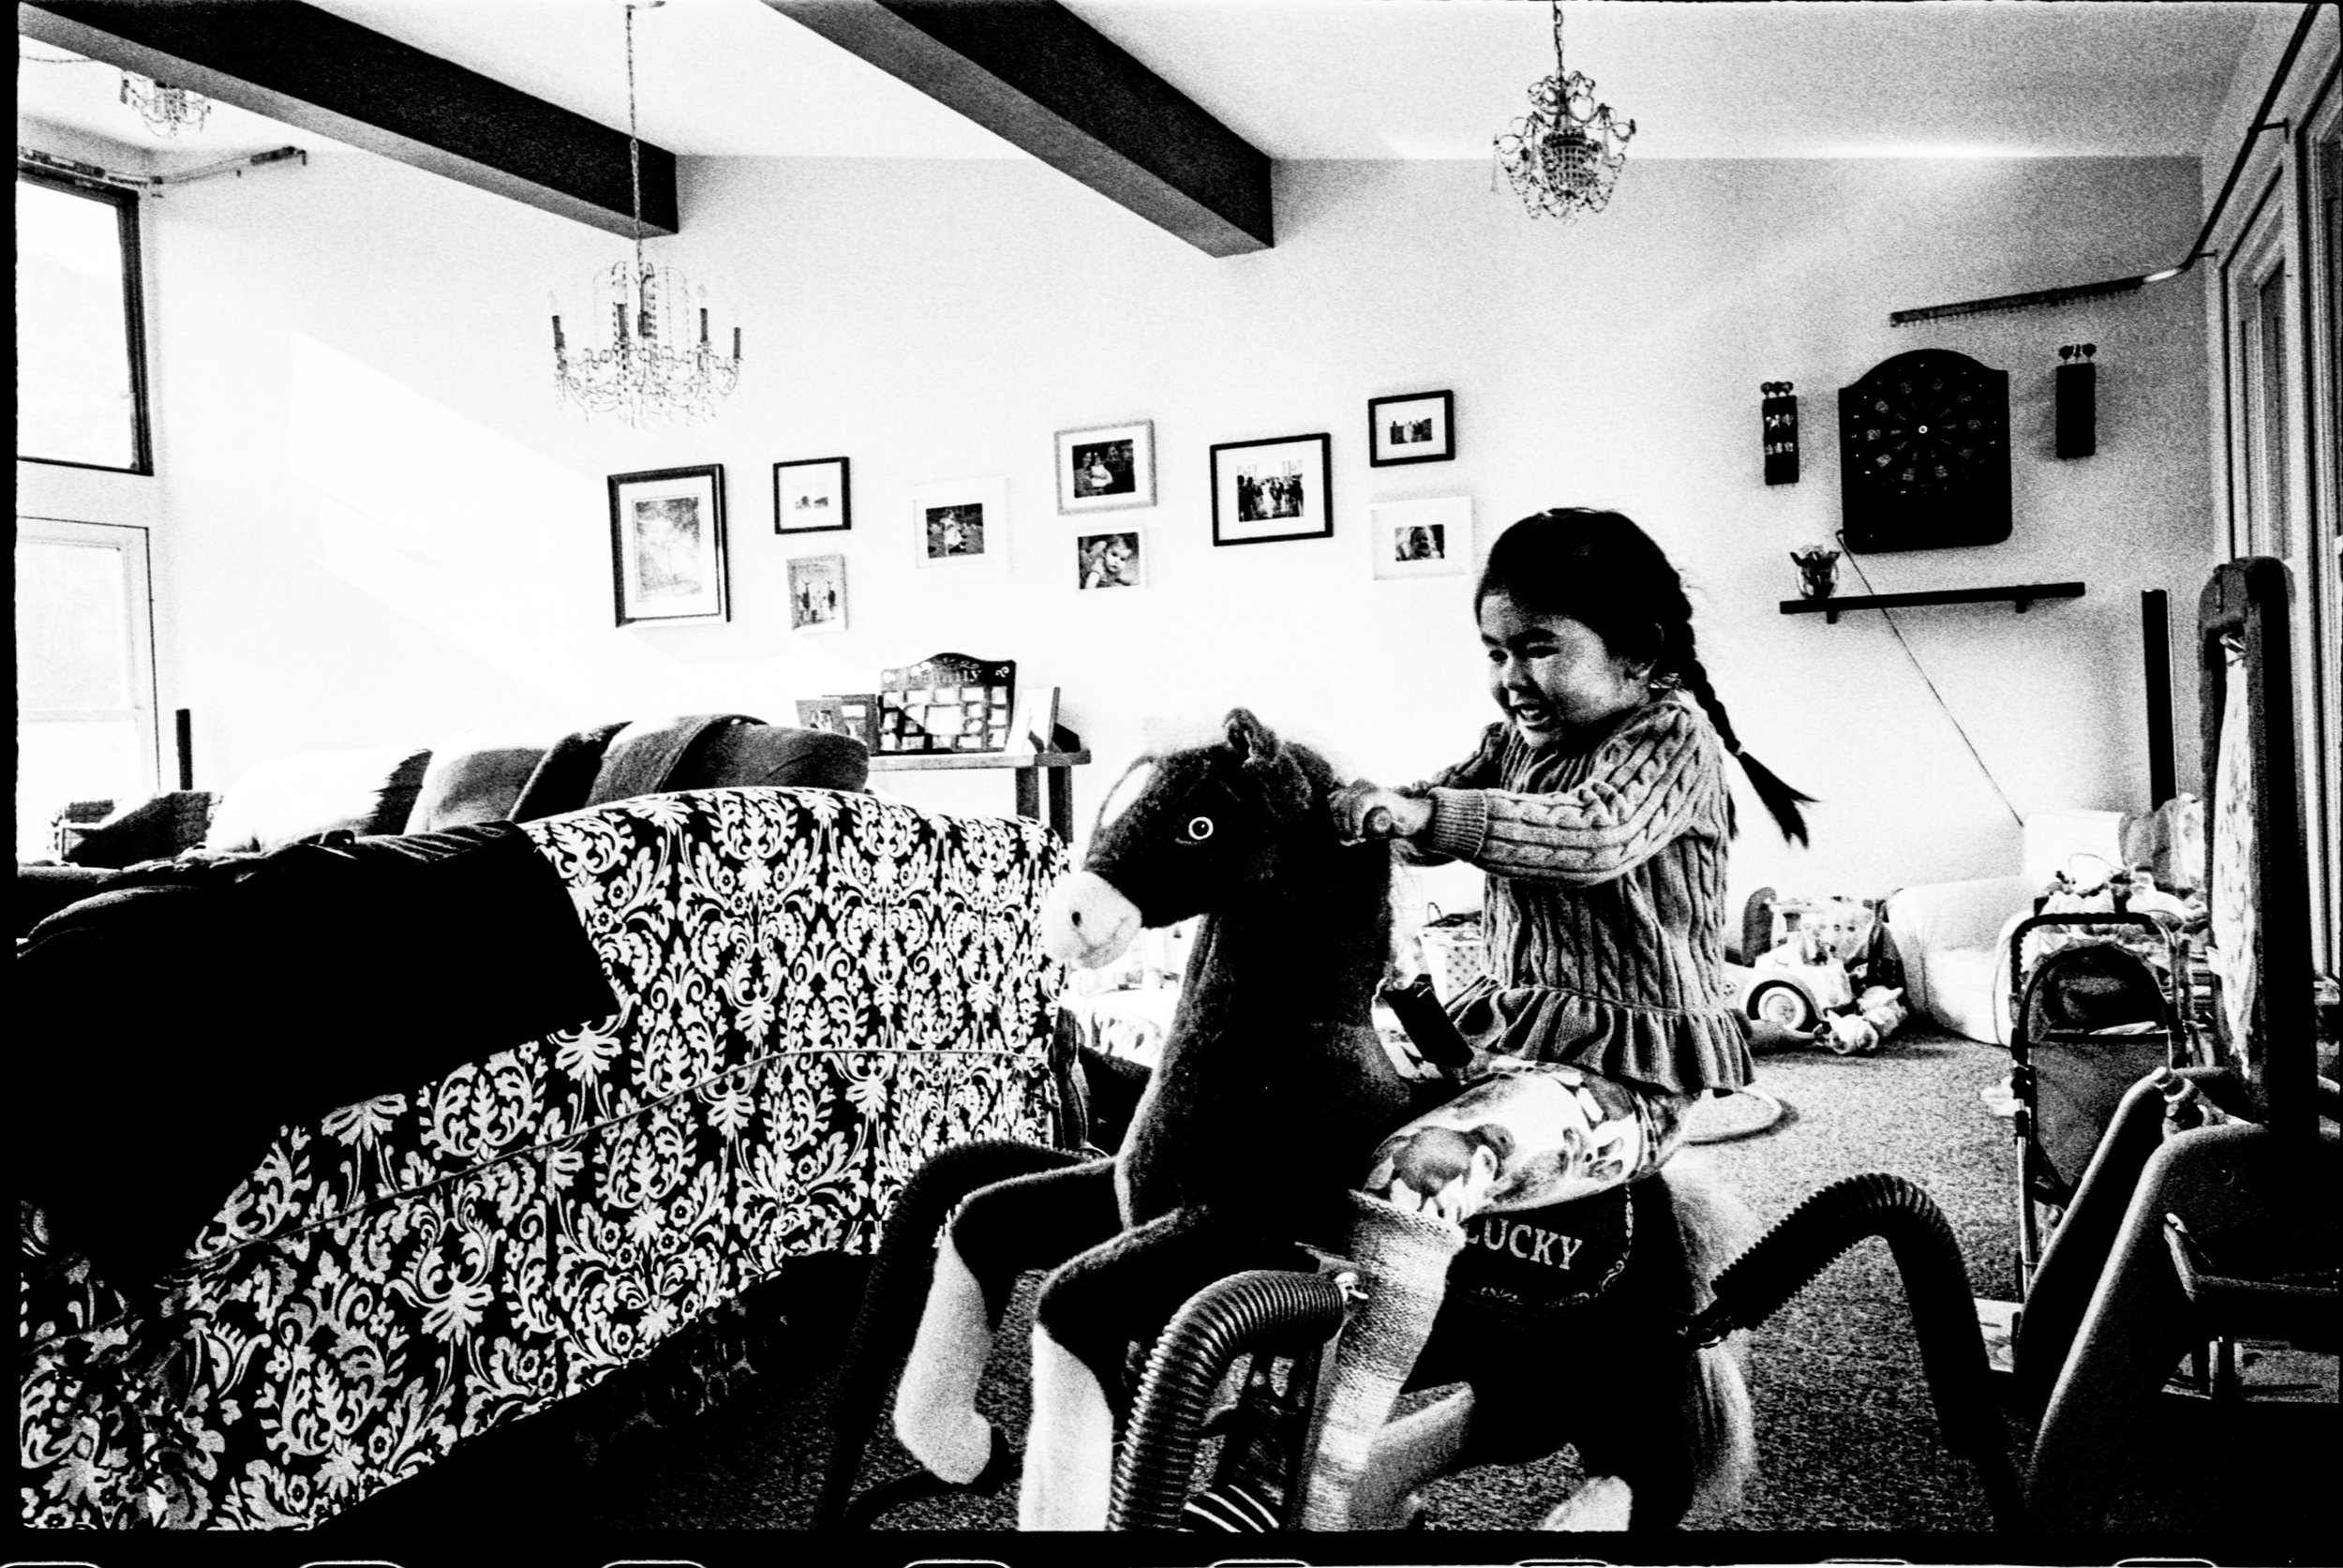 Ricoh GR1v; Ilford HP5 400; D76 (1:1, stand) @ 41-42c for 7.75  mins